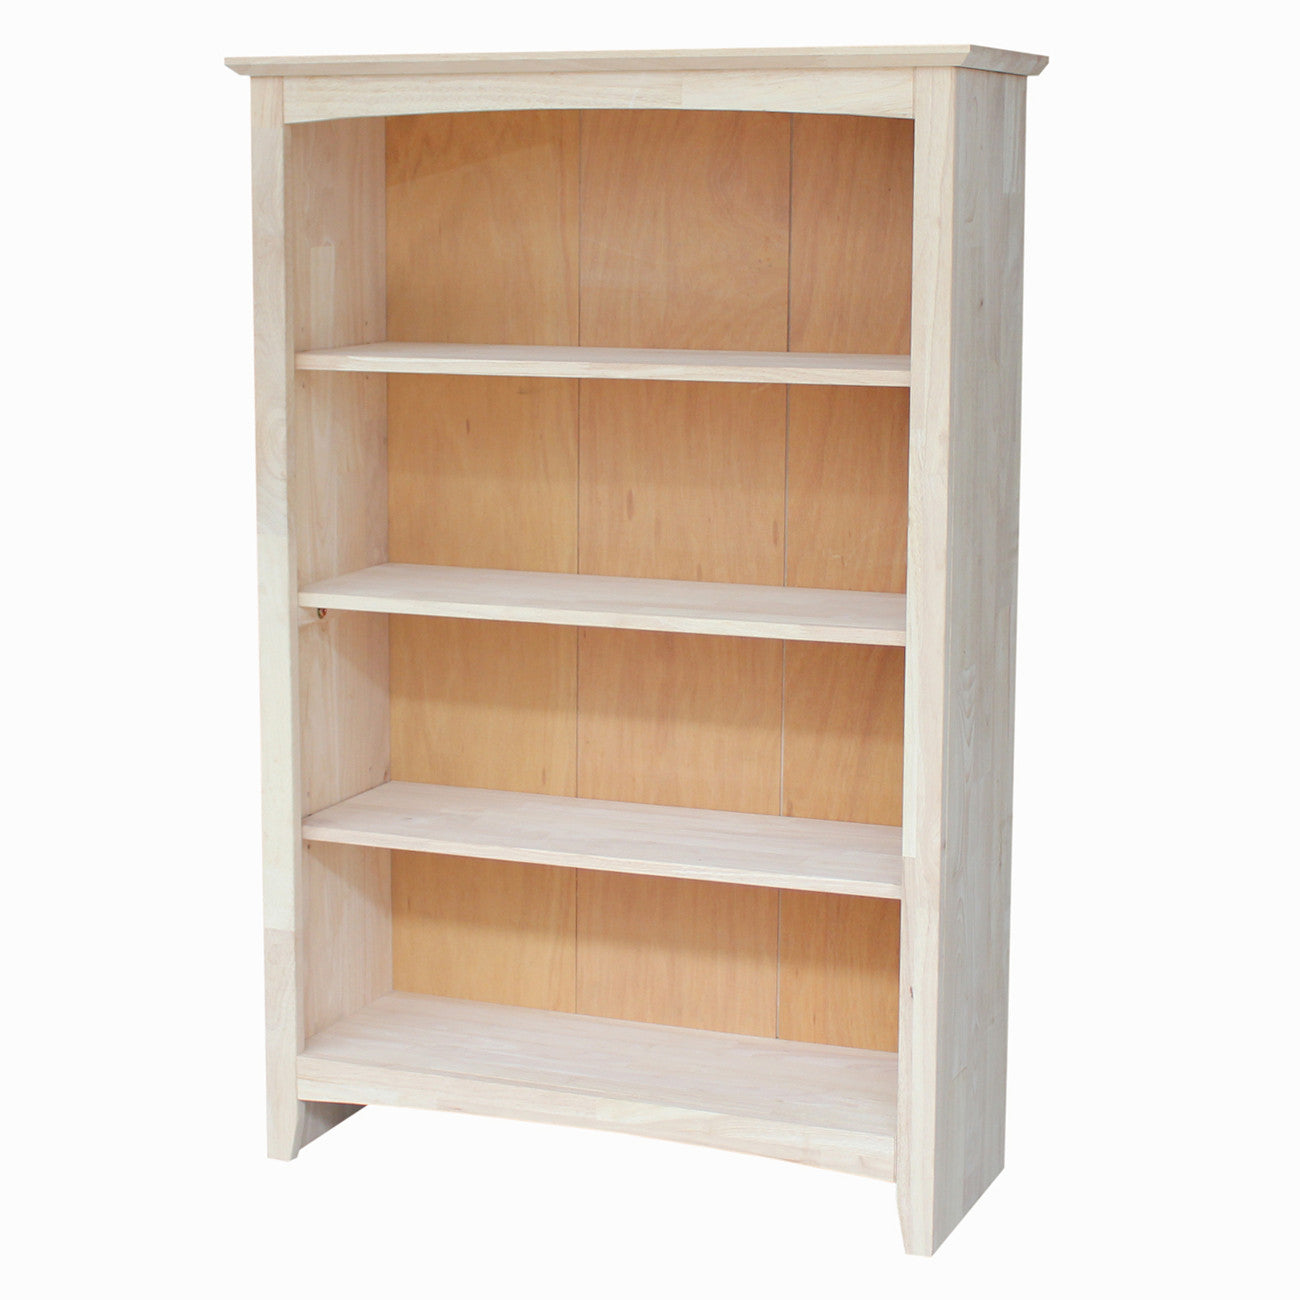 unfinished door mount unassembled product in wood single flush interior paint prehung bookcases x grade lightbox hidden bookcase